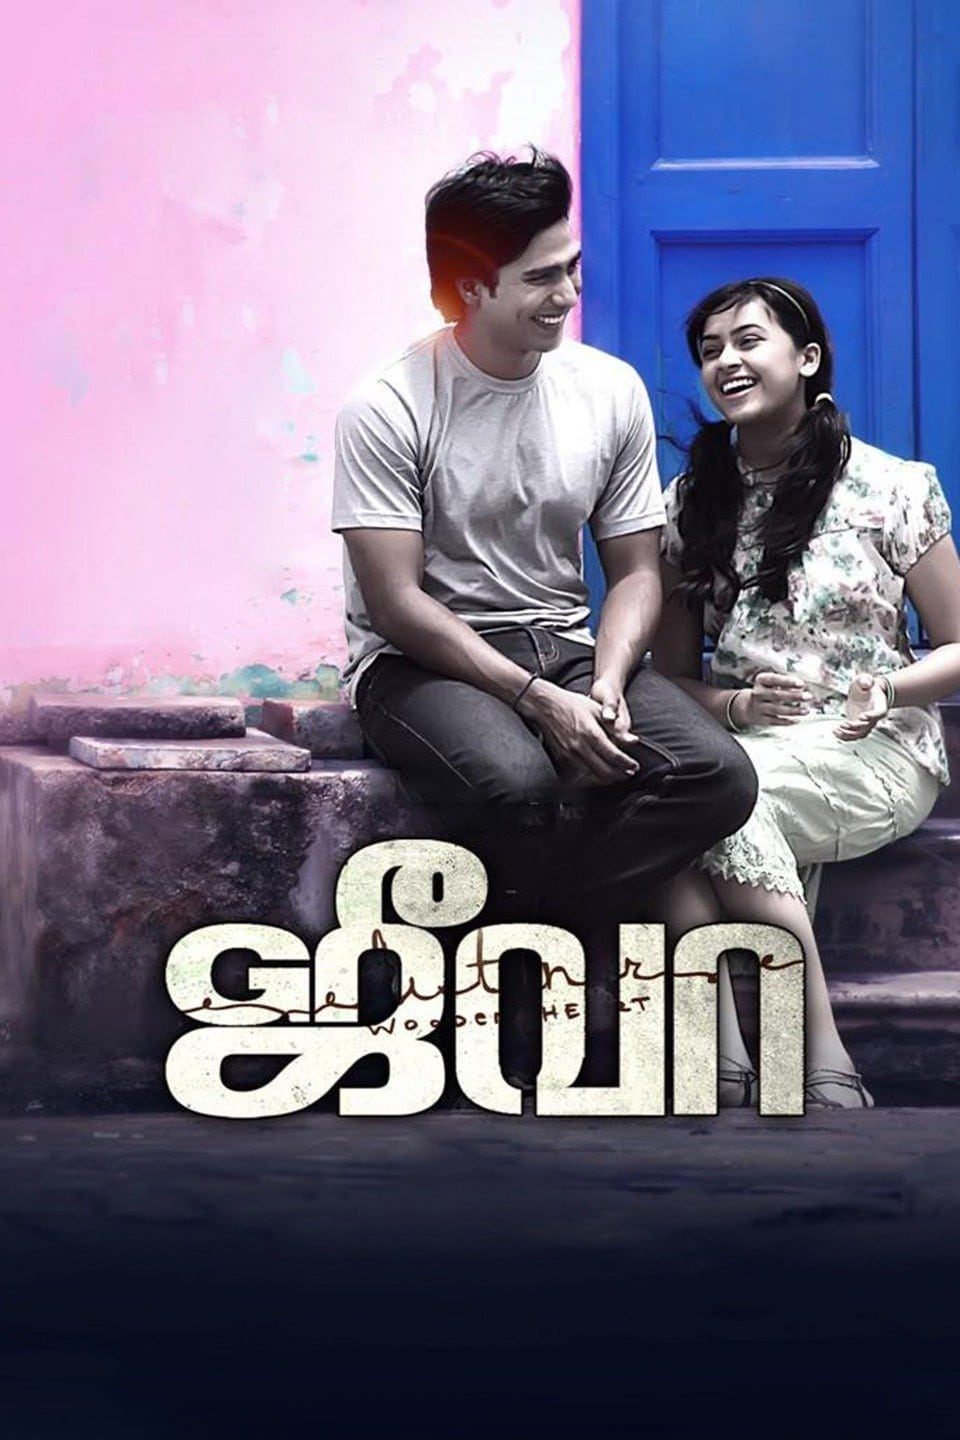 Jeeva Movie Streaming Online Watch on Disney Plus Hotstar, Jio Cinema